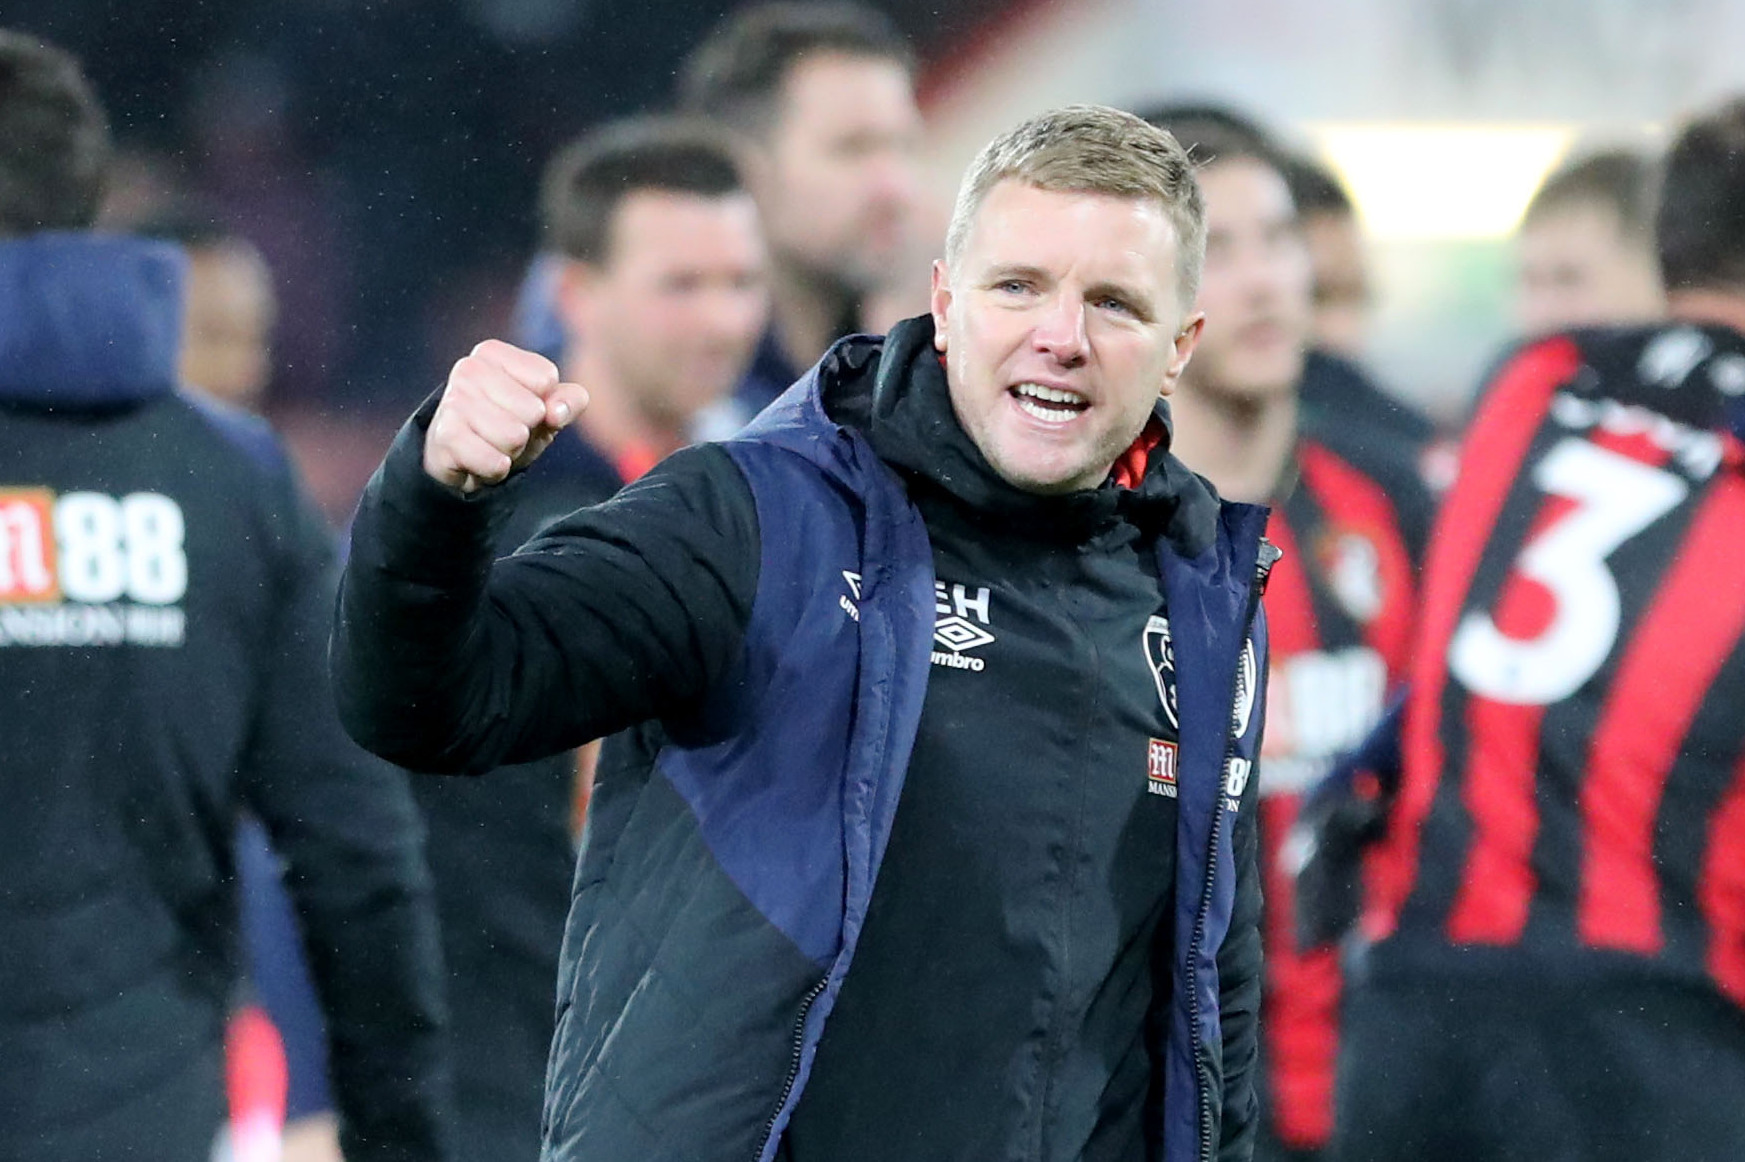 'It was a real reward for the players' efforts' – Howe's delight after West Ham triumph